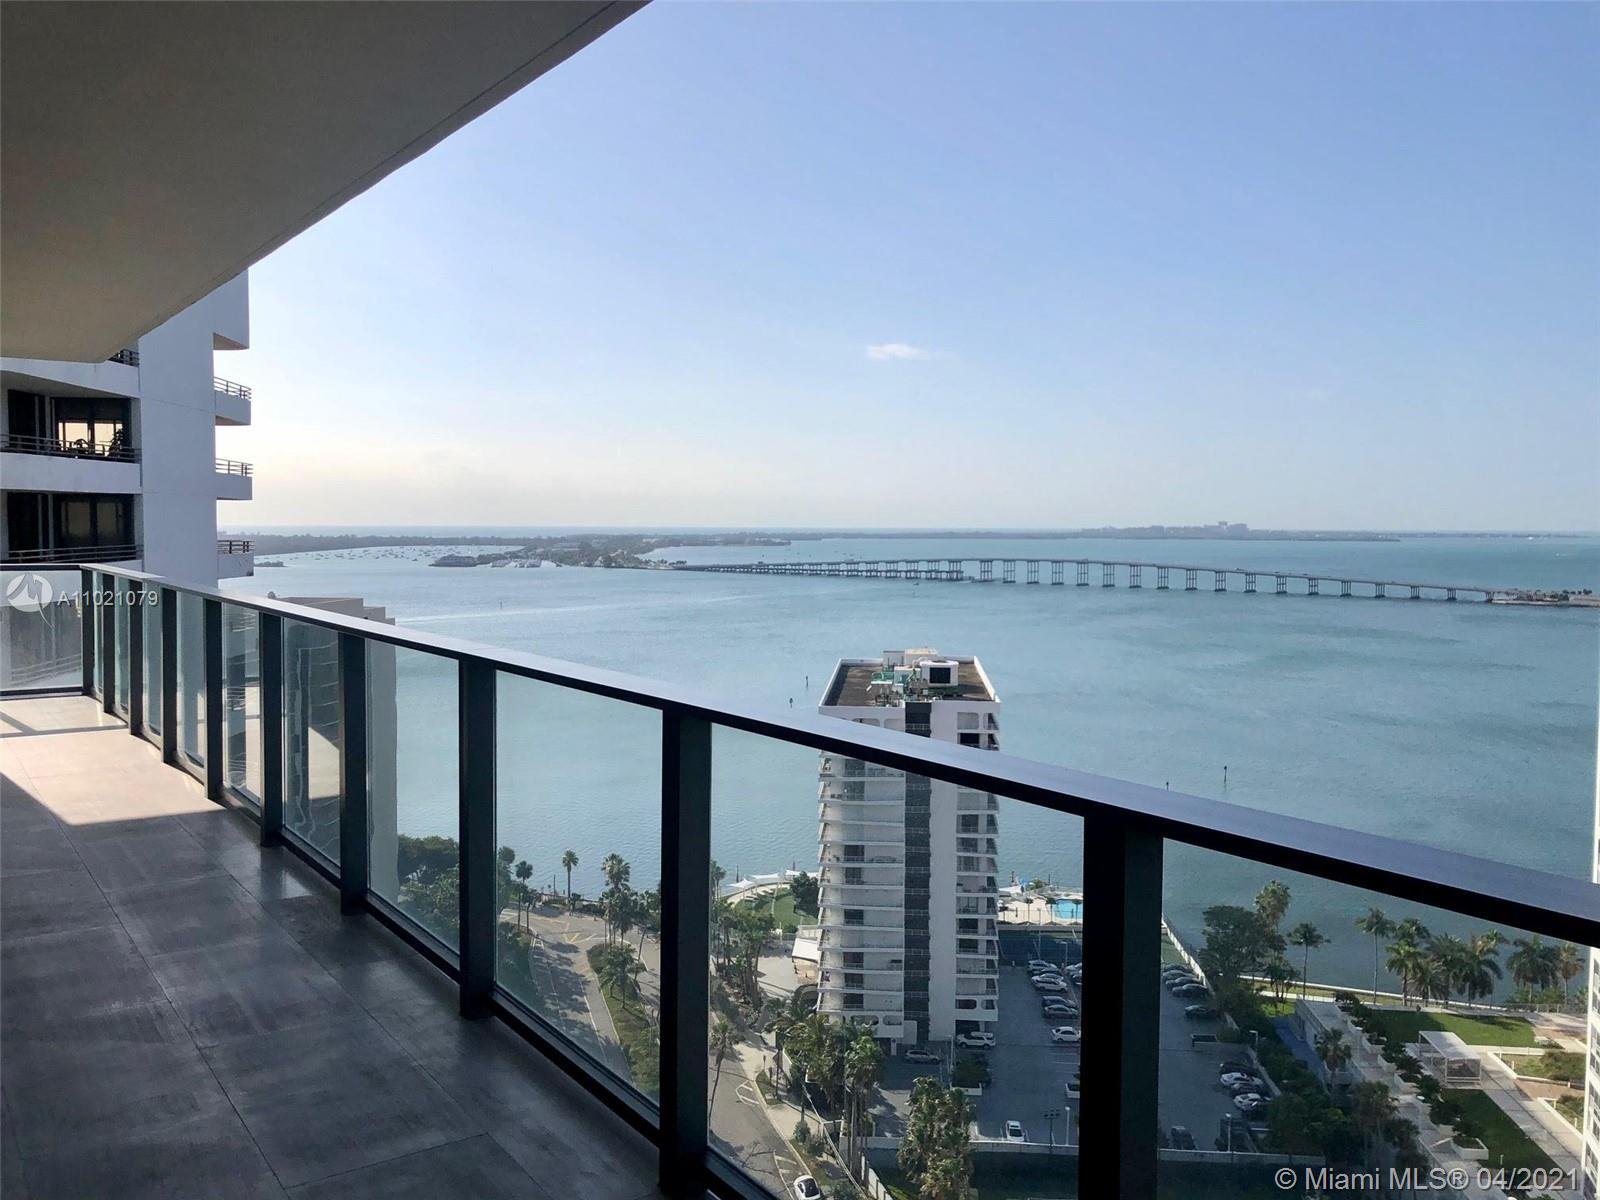 Fully Furnished Spectacular 2 Beds/2.5 Baths SE corner residence at Echo Brickell, a boutique residential high-rise in the epicenter of Miami's fastest growing metropolitan neighborhood, located on the East side of Brickell Avenue. Exquisitely designed with breathtaking bay views, incredible sunrise from the expansive terraces, with summer kitchen, that brings the outside in. Fully finished, marble flooring throughout the living spaces elevates the level of grandeur. Italian glass cabinetry, exquisite marble countertops and top-of the line SubZero, Wolf and Bosch appliances. APPLE® Home Technology, Infinity-edge pool, state-of-the-art gym and spa deck with panoramic views of Biscayne Bay and Downtown Miami. 24/7 concierge, valet, pet walker and more.